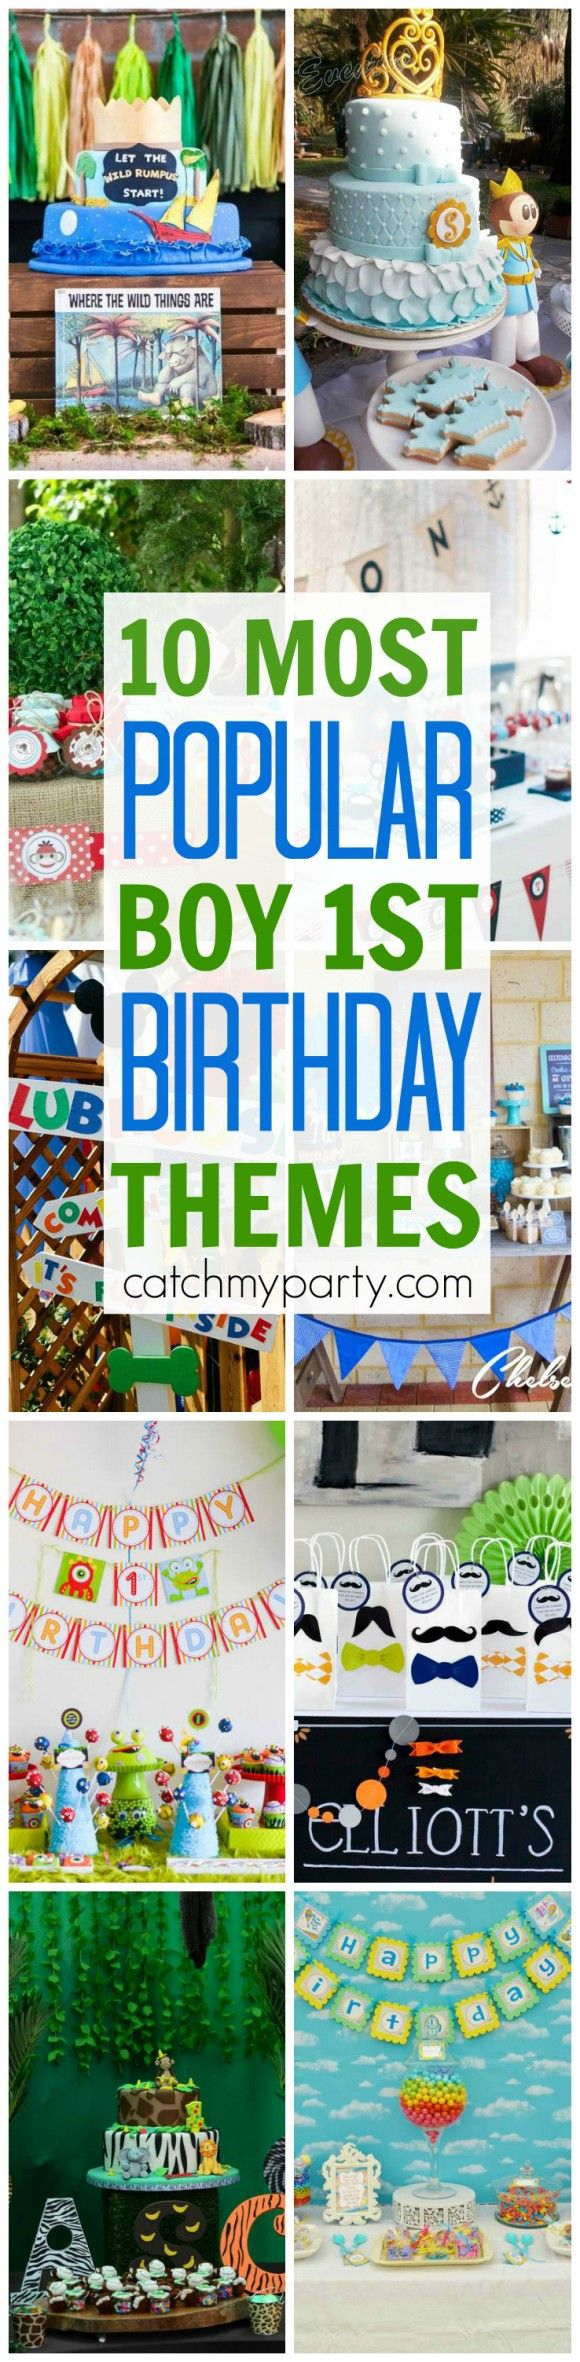 10 Most Popular Boy 1st Birthday Party Themes | CatchMyParty.com